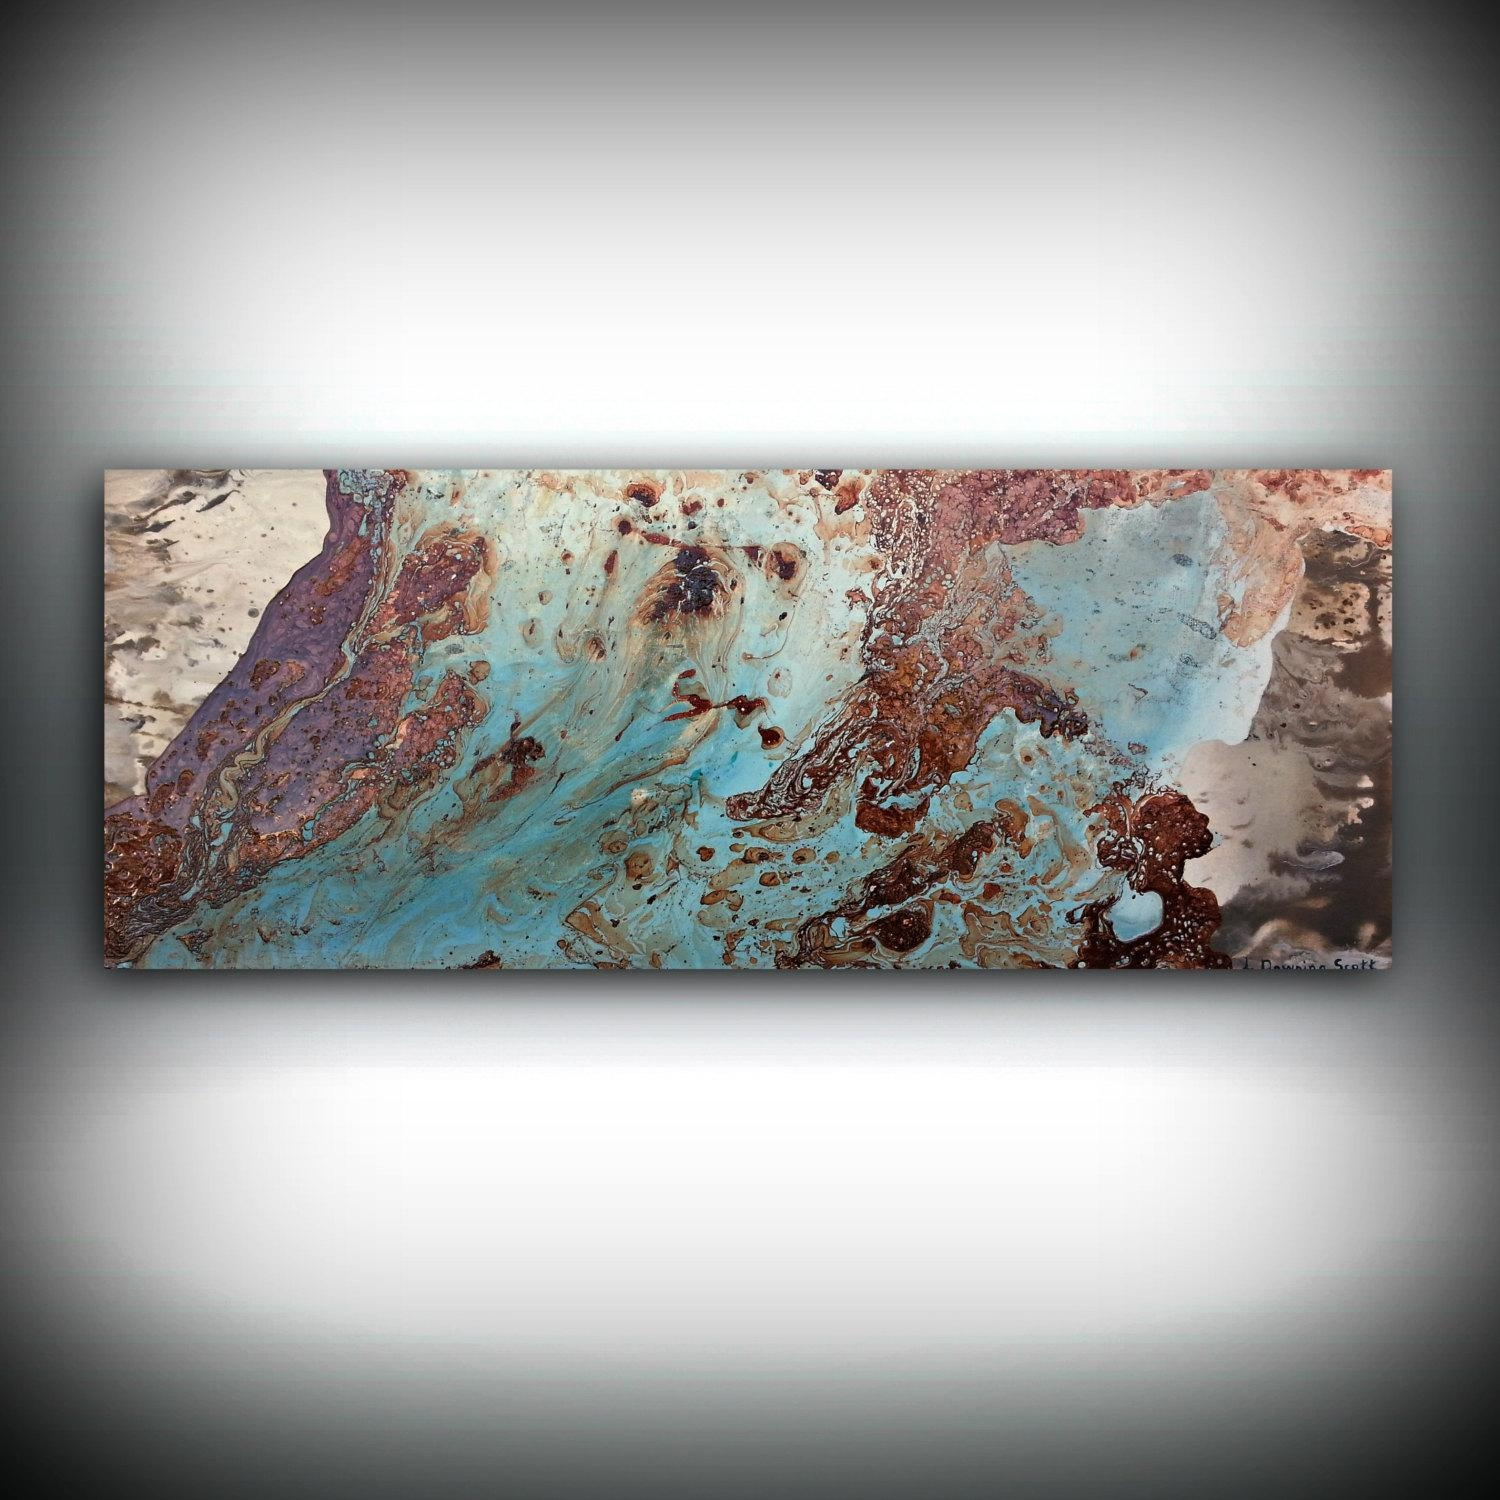 Copper Paintings – L Dawning Scott Fine Art In Large Copper Wall Art (Image 3 of 20)